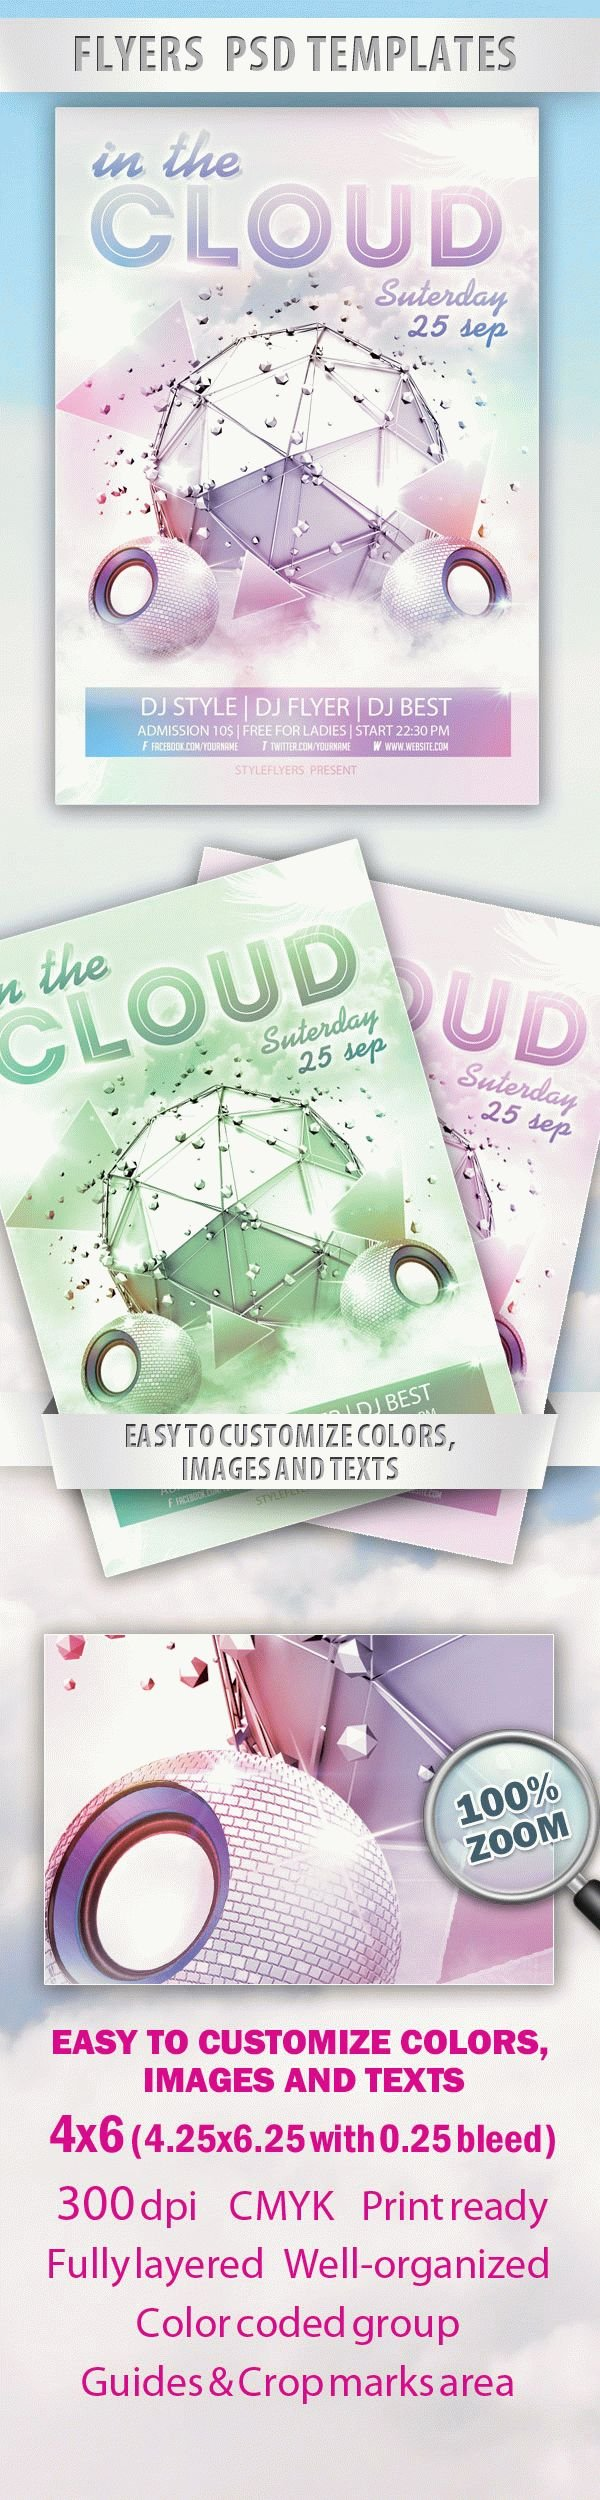 In the Cloud Flyer